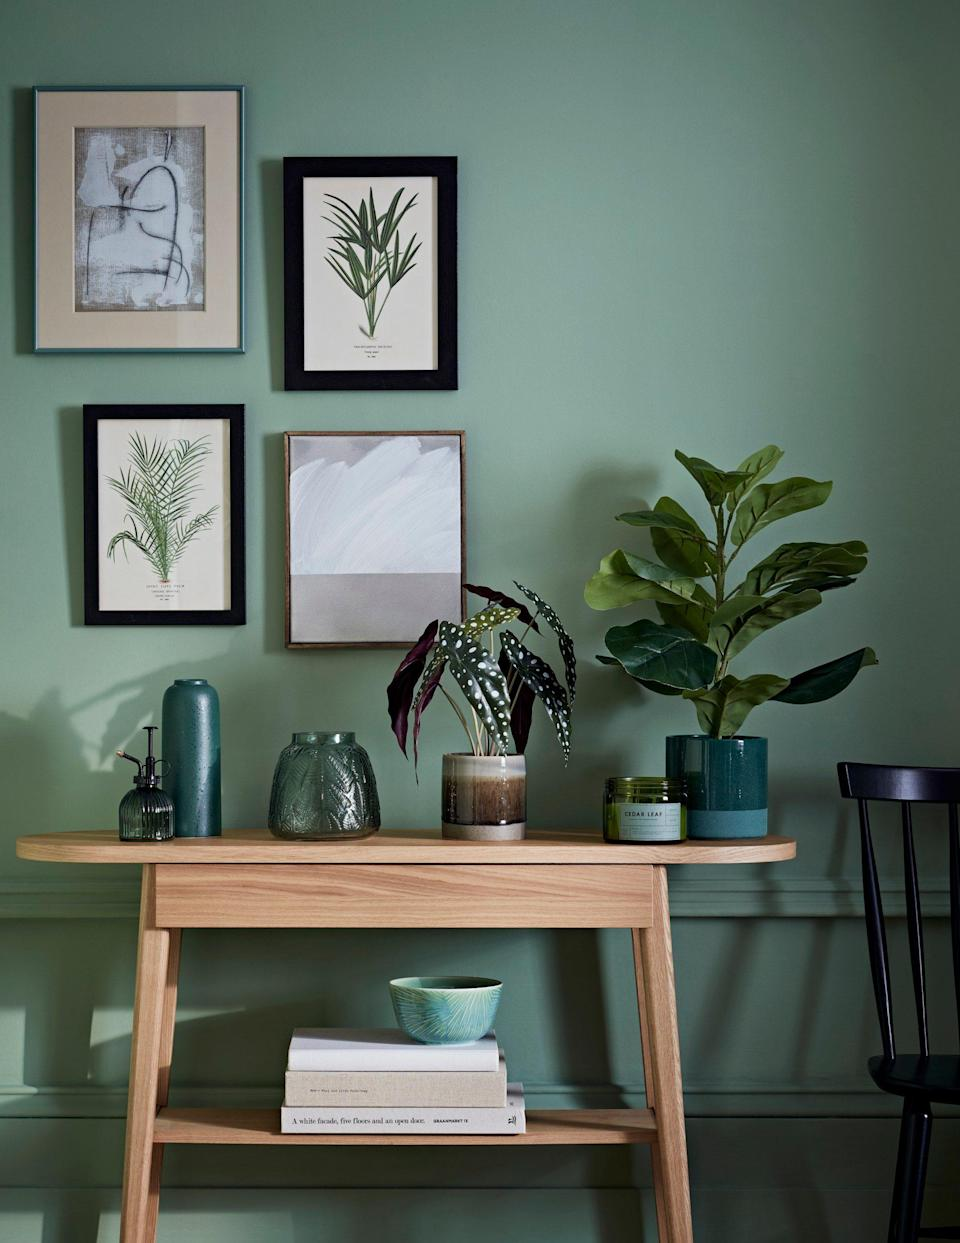 Calming colours and prints of plants - Jon Day Photography